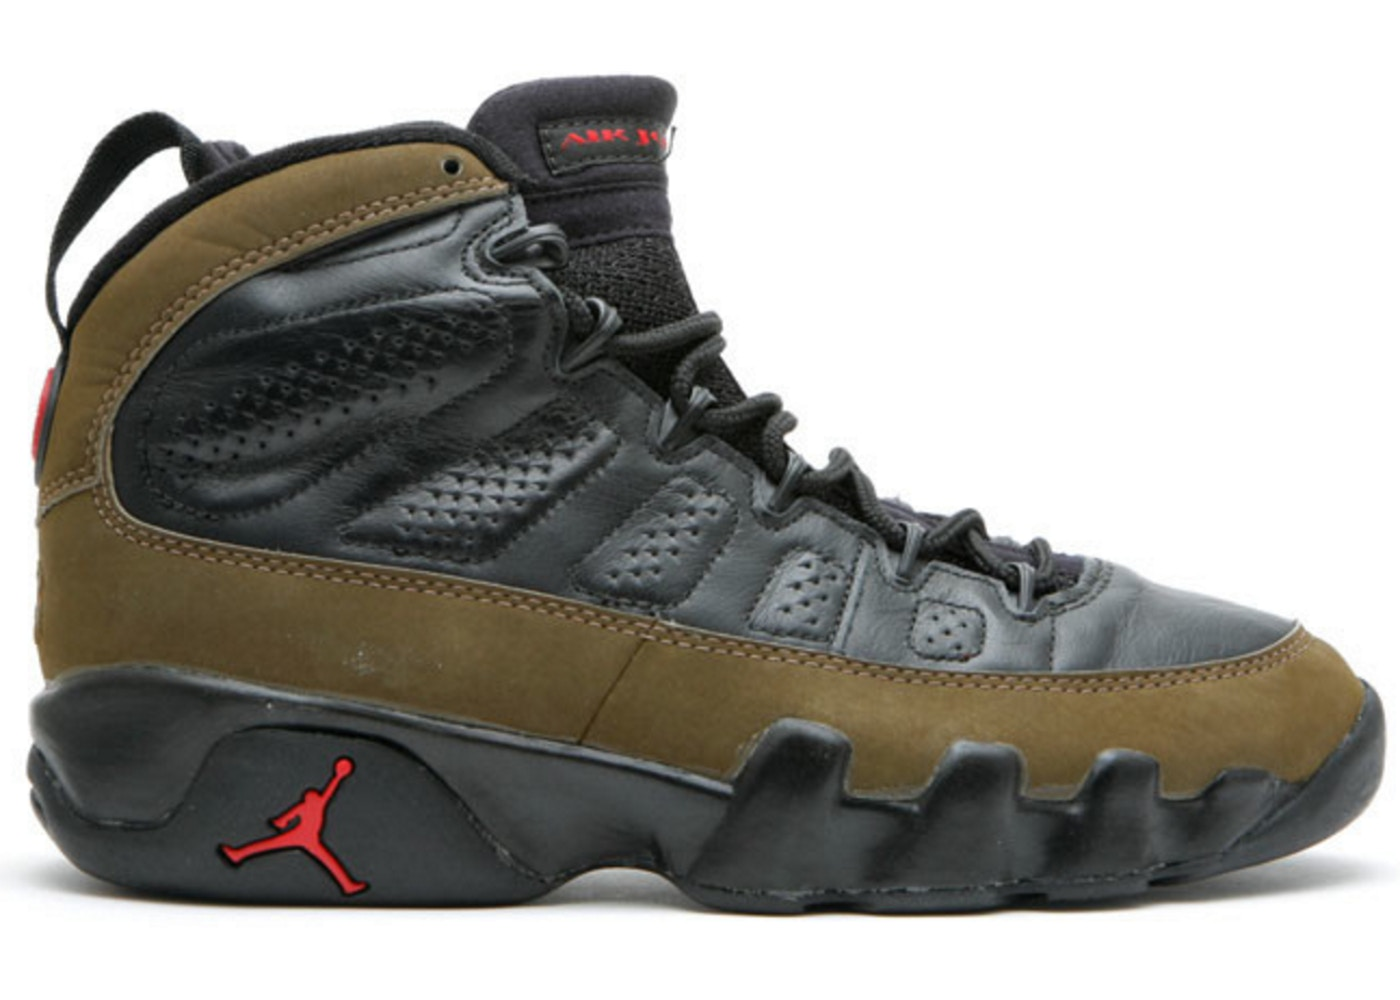 lowest price 10d99 3e269 Air Jordan 9 OG Olive (1993) - 130182-030